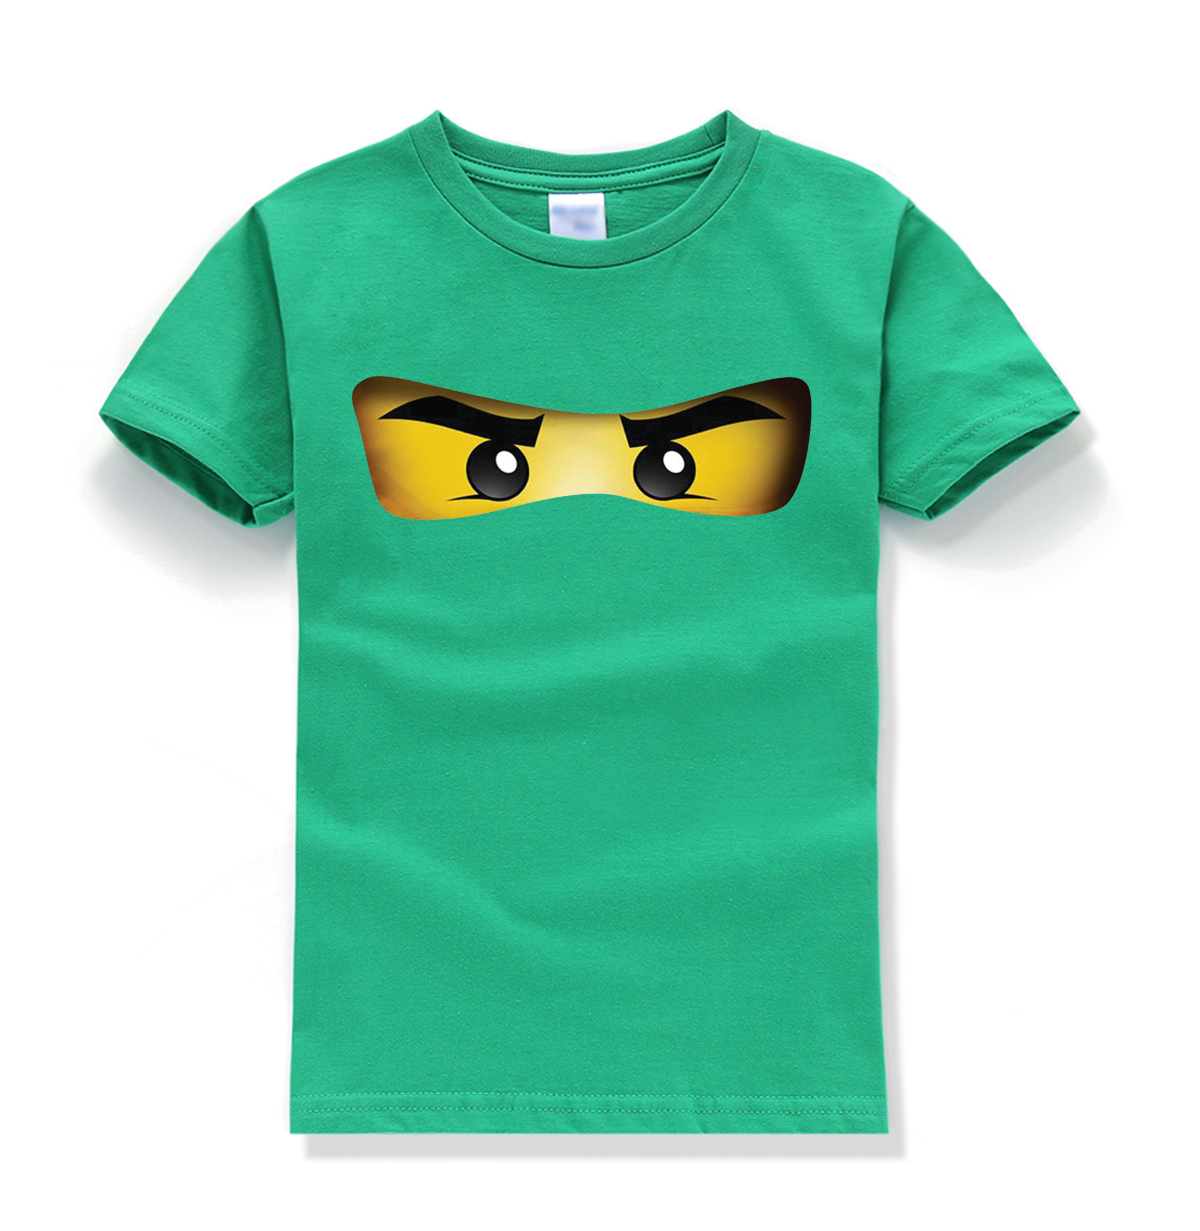 hot sale baby boys clothes 2018 summer funny cartoon pattern t-shirts 100% cotton good quality t-shirts O-neck short sleeve tees